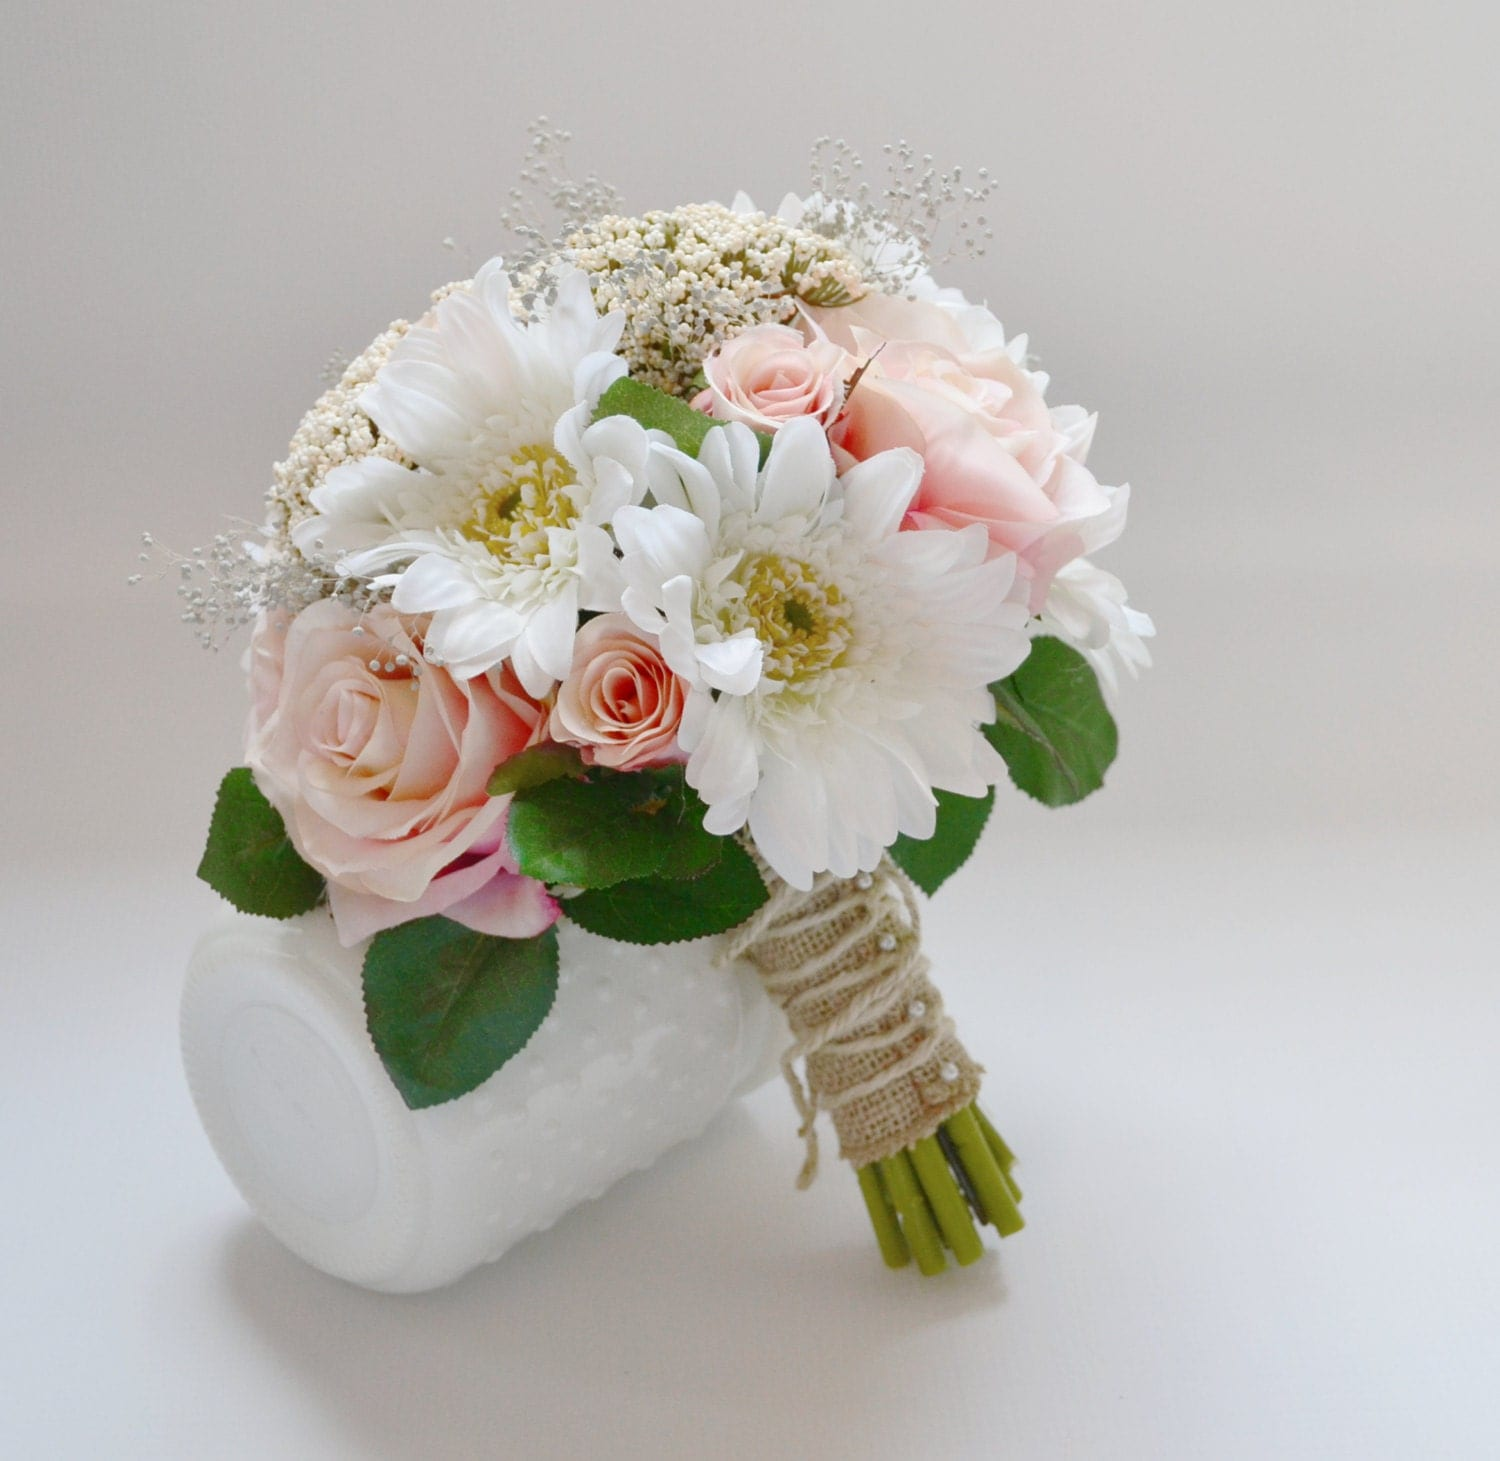 Wedding Bouquet Pink Roses Green Berries Leaves White